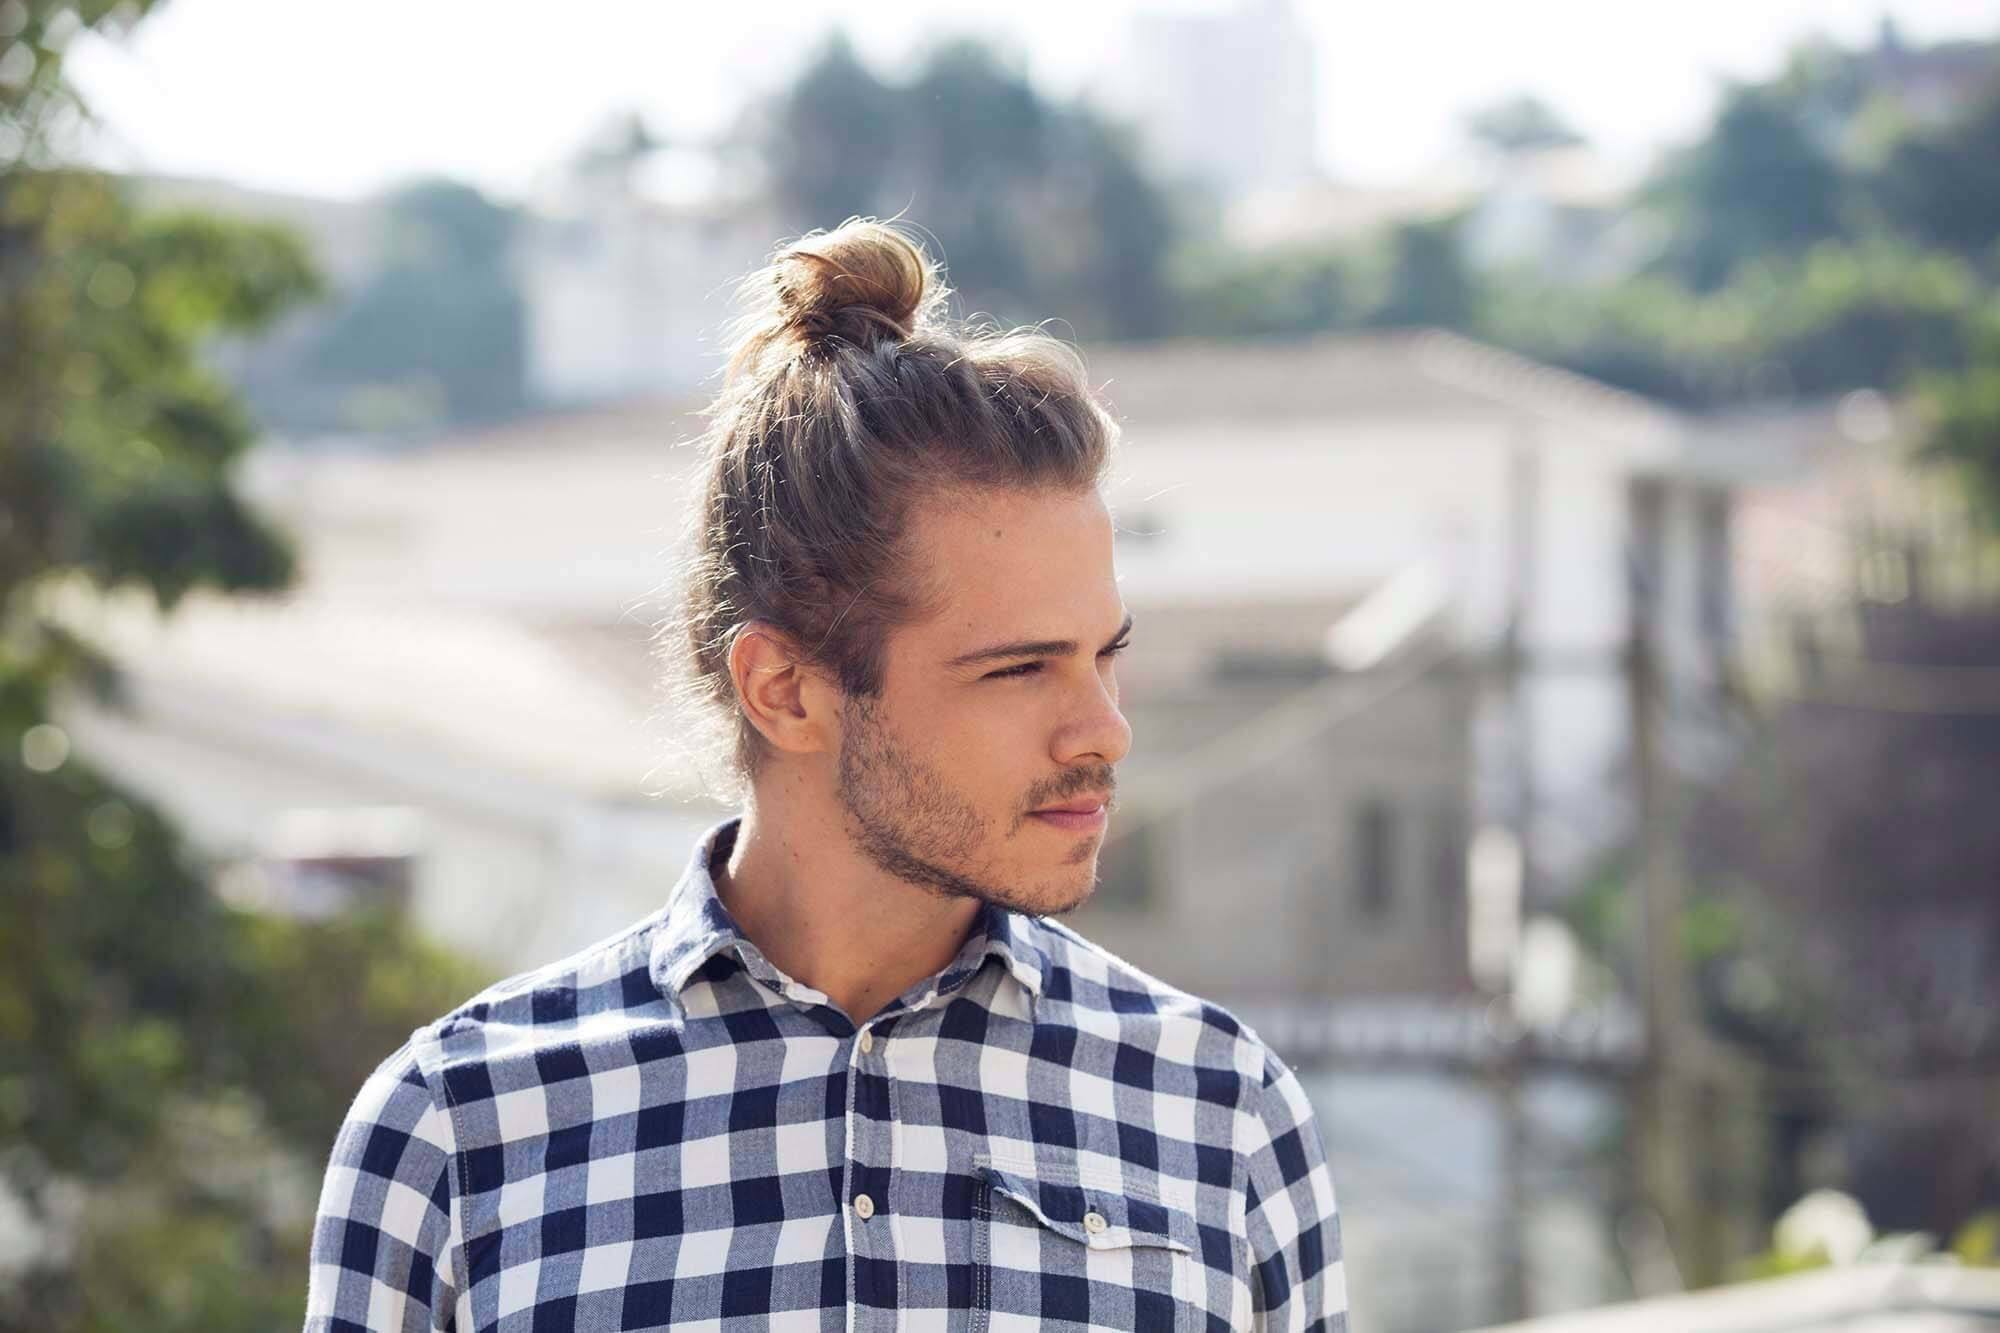 male model with blonde hair with high man bun